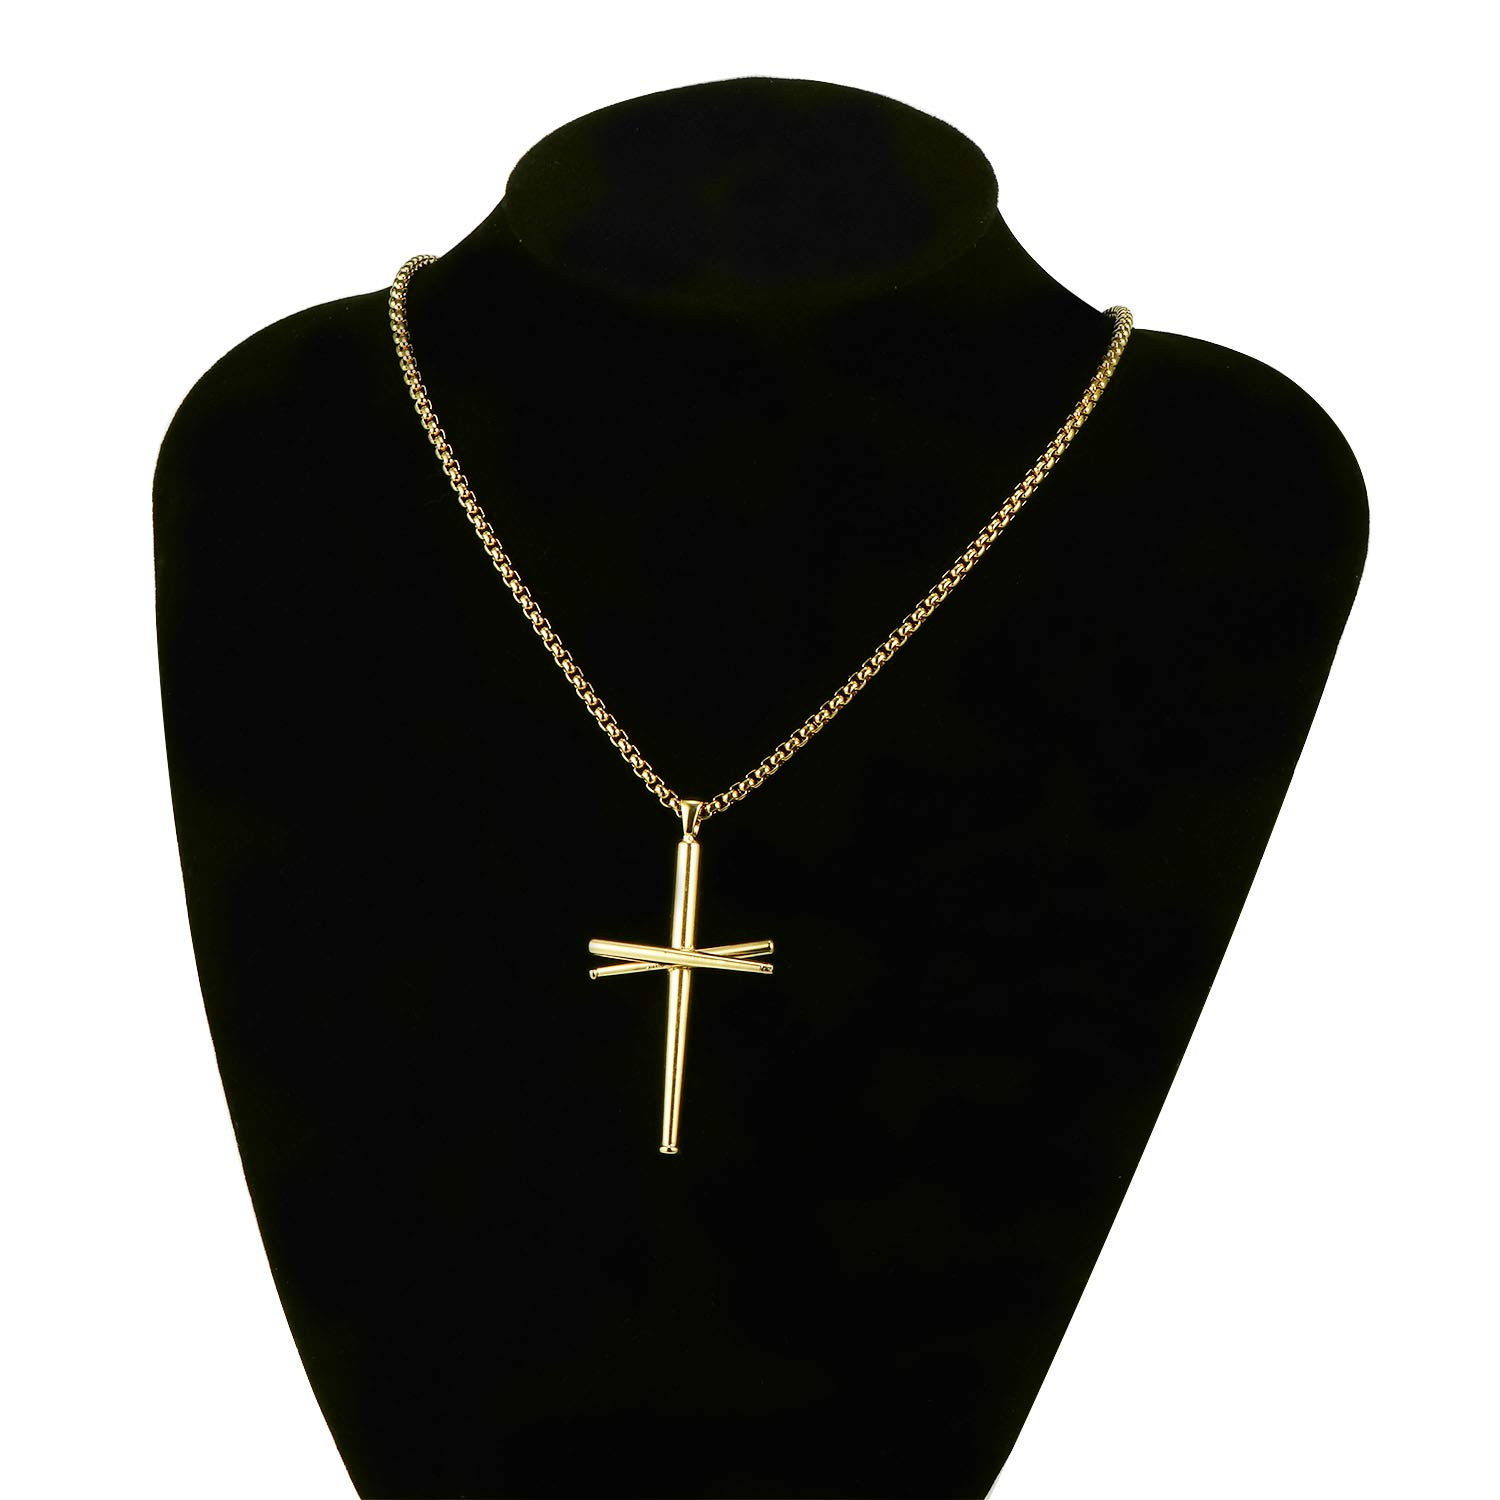 RMOYI Cross Necklace Baseball Bats Athletes Cross Pendant Chain,Sport Stainless Steel Cross Necklaces for Men Women Boys Girls,Large and Small Silver Black 18-24 Inches